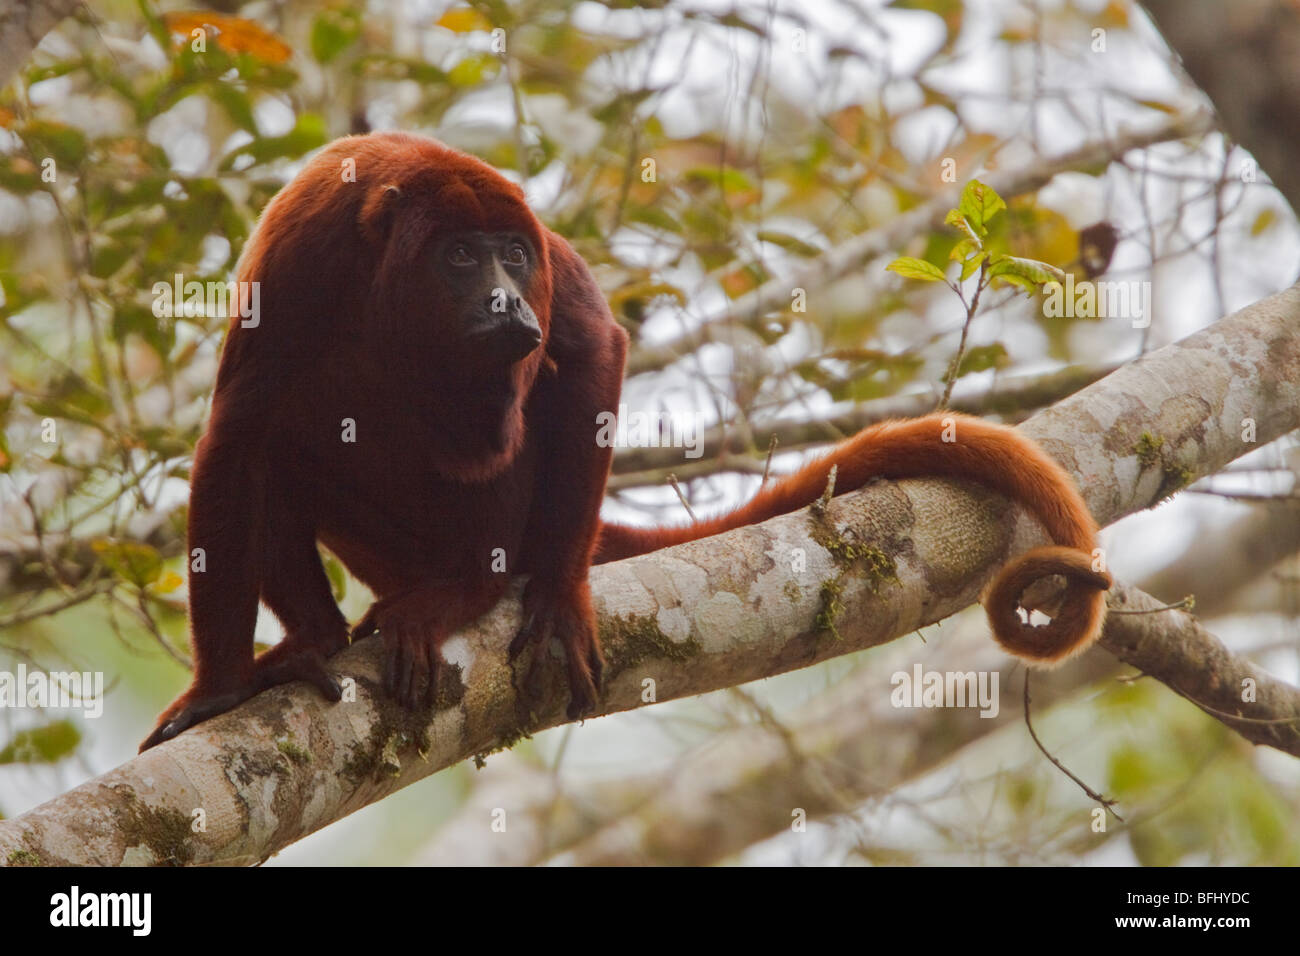 A Monkey perched in a tree in Amazonian Ecuador. - Stock Image